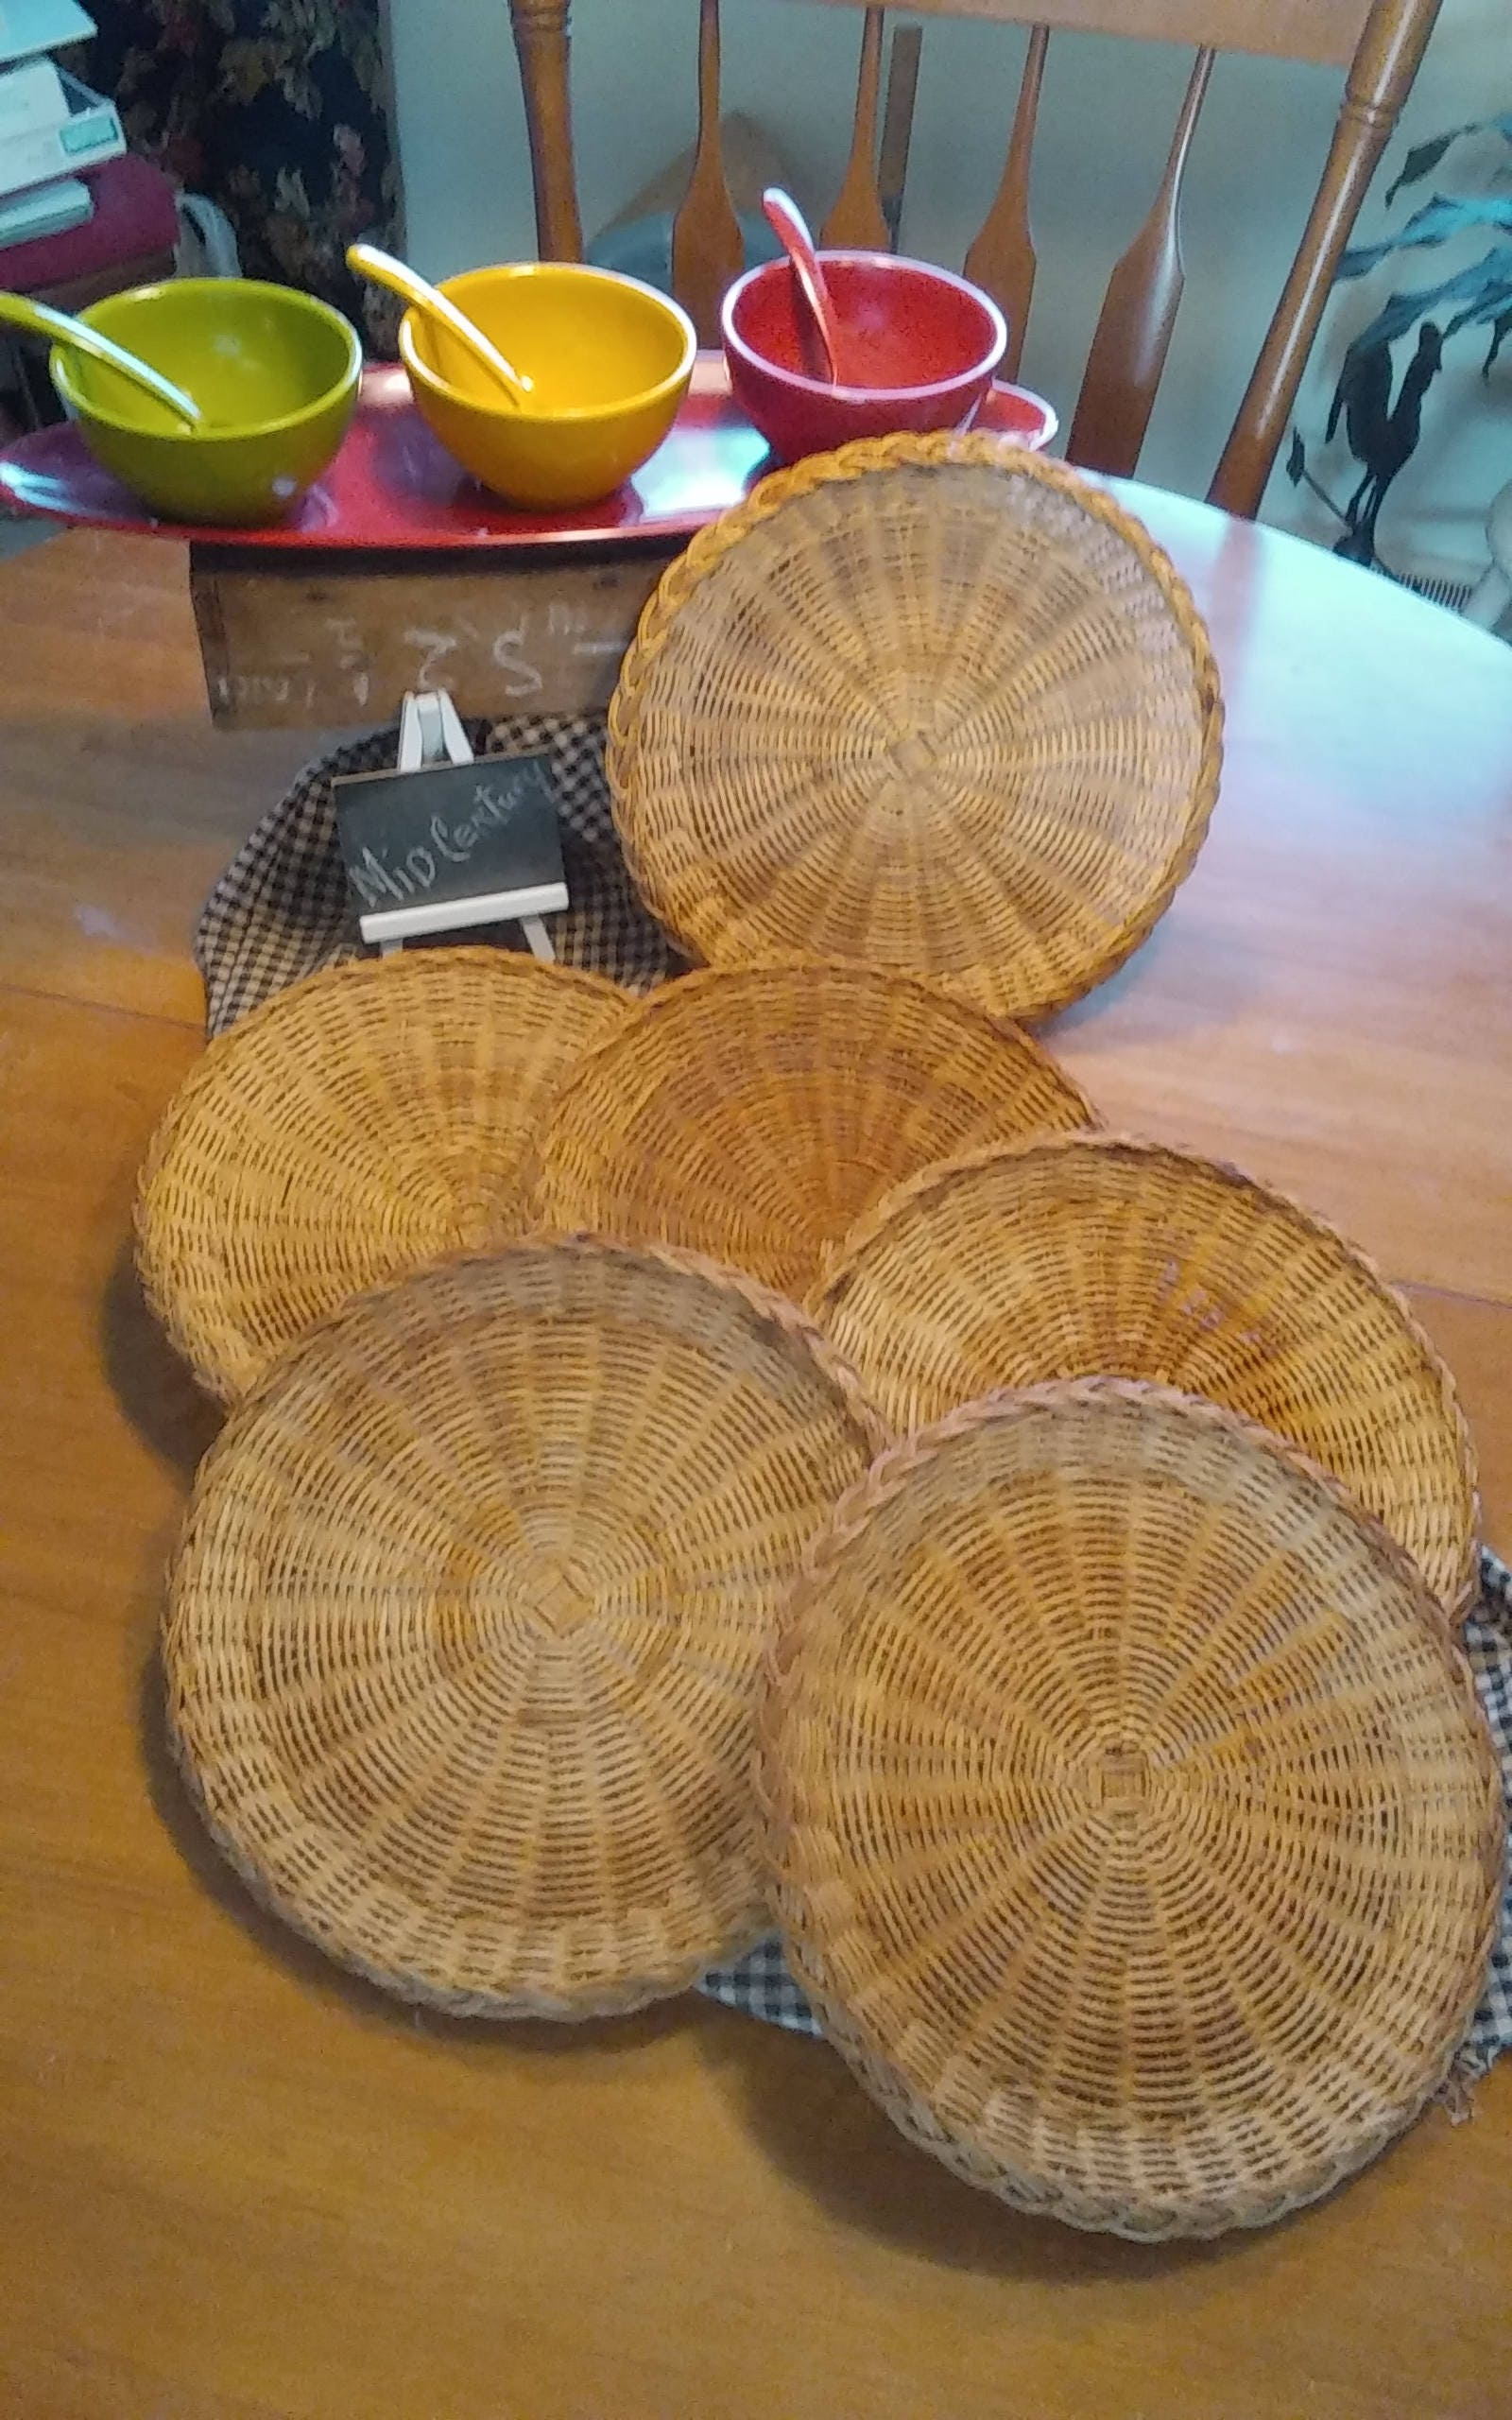 6 Vintage Wicker/Bamboo Paper Plate Holders Rich Natural Wicker Color Kitchenu0026Dining & 6 Vintage Wicker/Bamboo Paper Plate Holders Rich Natural Wicker ...